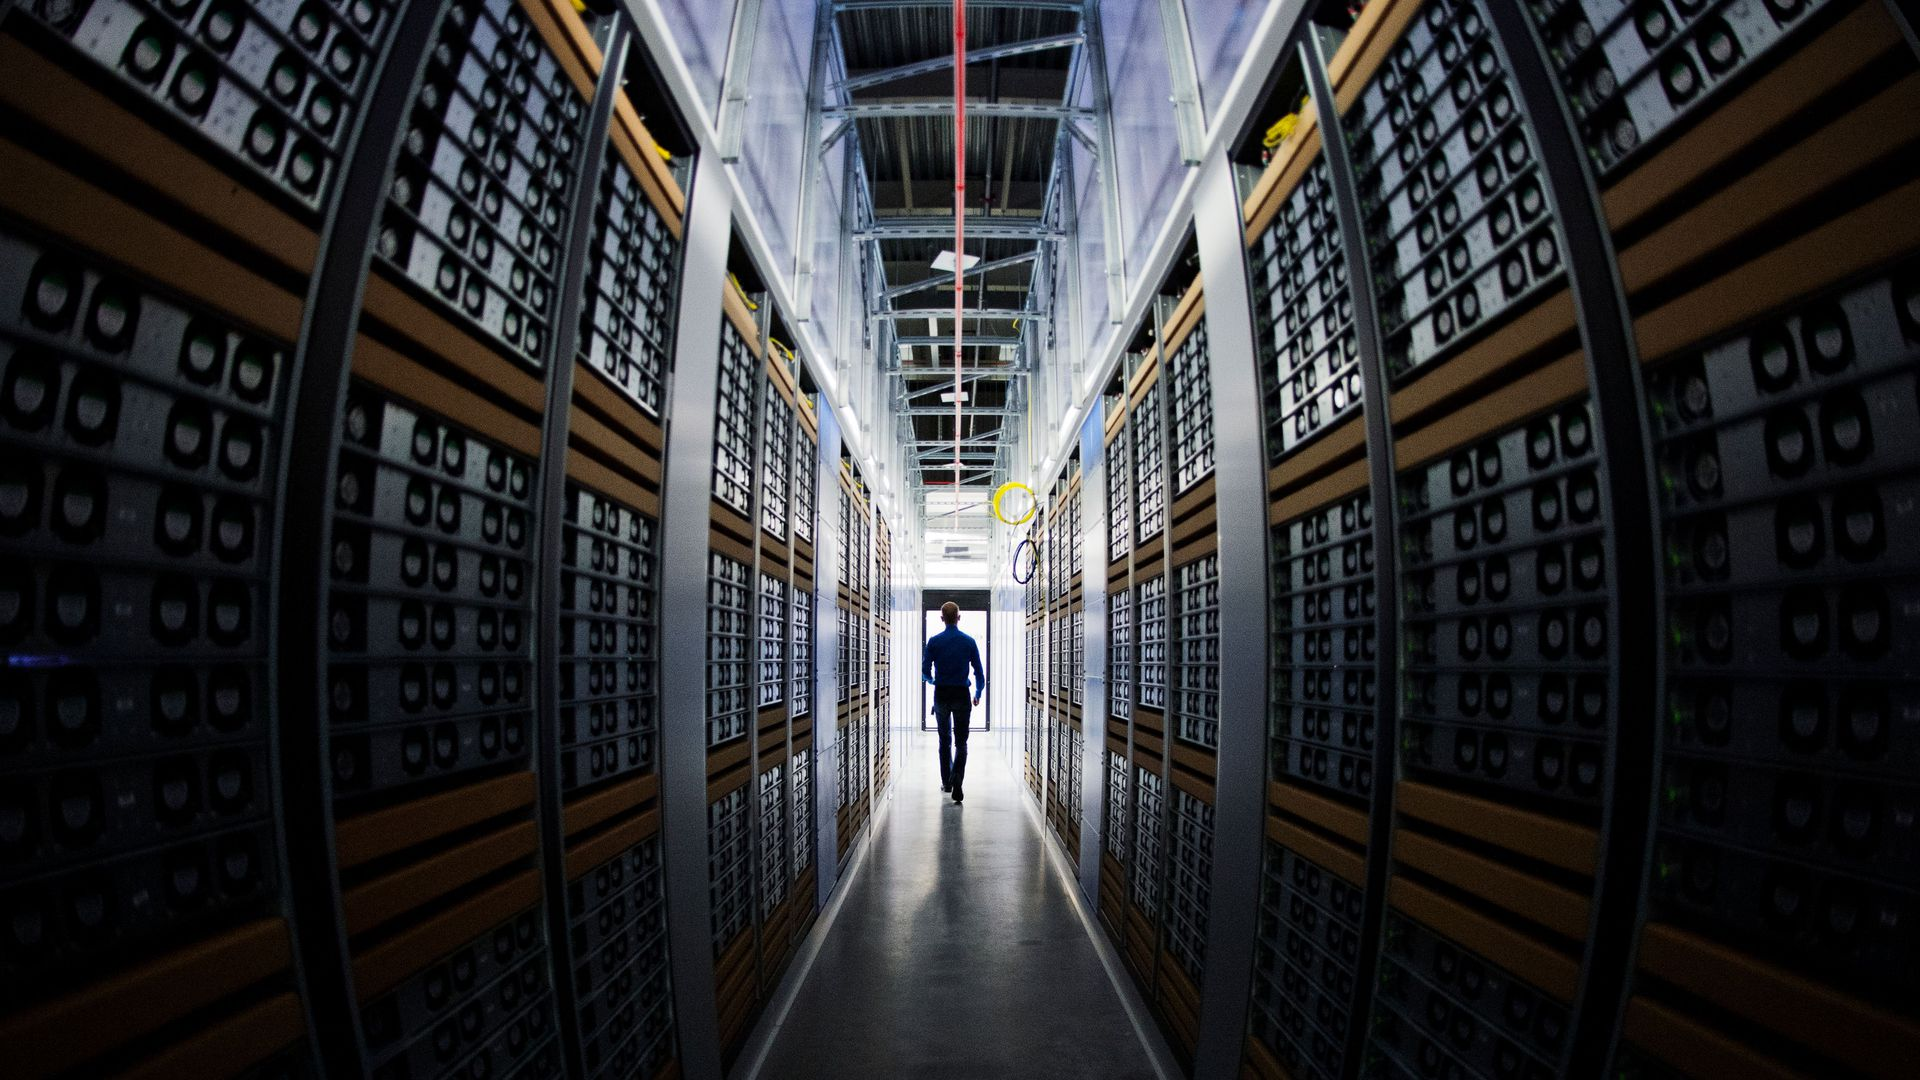 Man walking through hall of servers